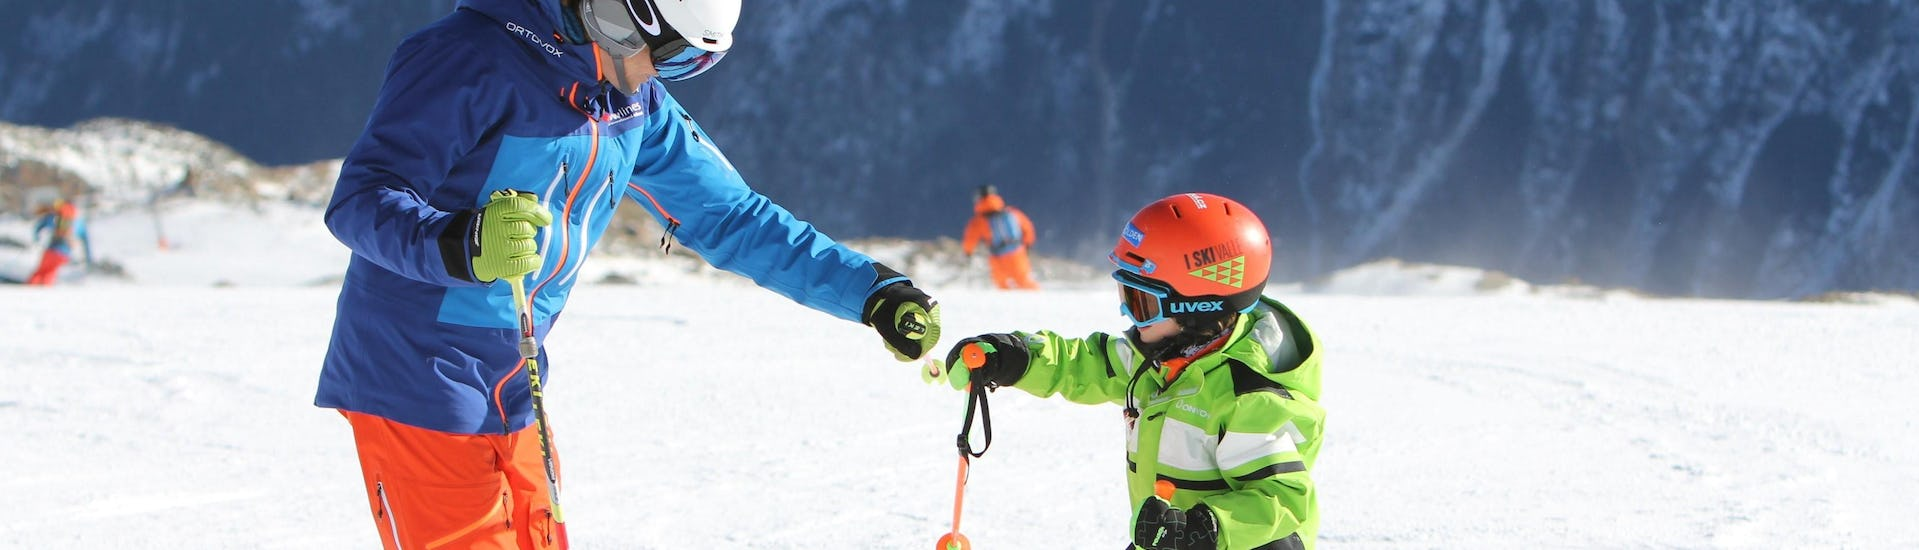 A young skier is having fun with a private ski instructor from the ski school during a Private Ski Lessons for Kids in Obergurgl-Hochgurgl organized by the ski school Ski- und Snowboardschule SNOWLINES Sölden in the ski resort of Sölden.